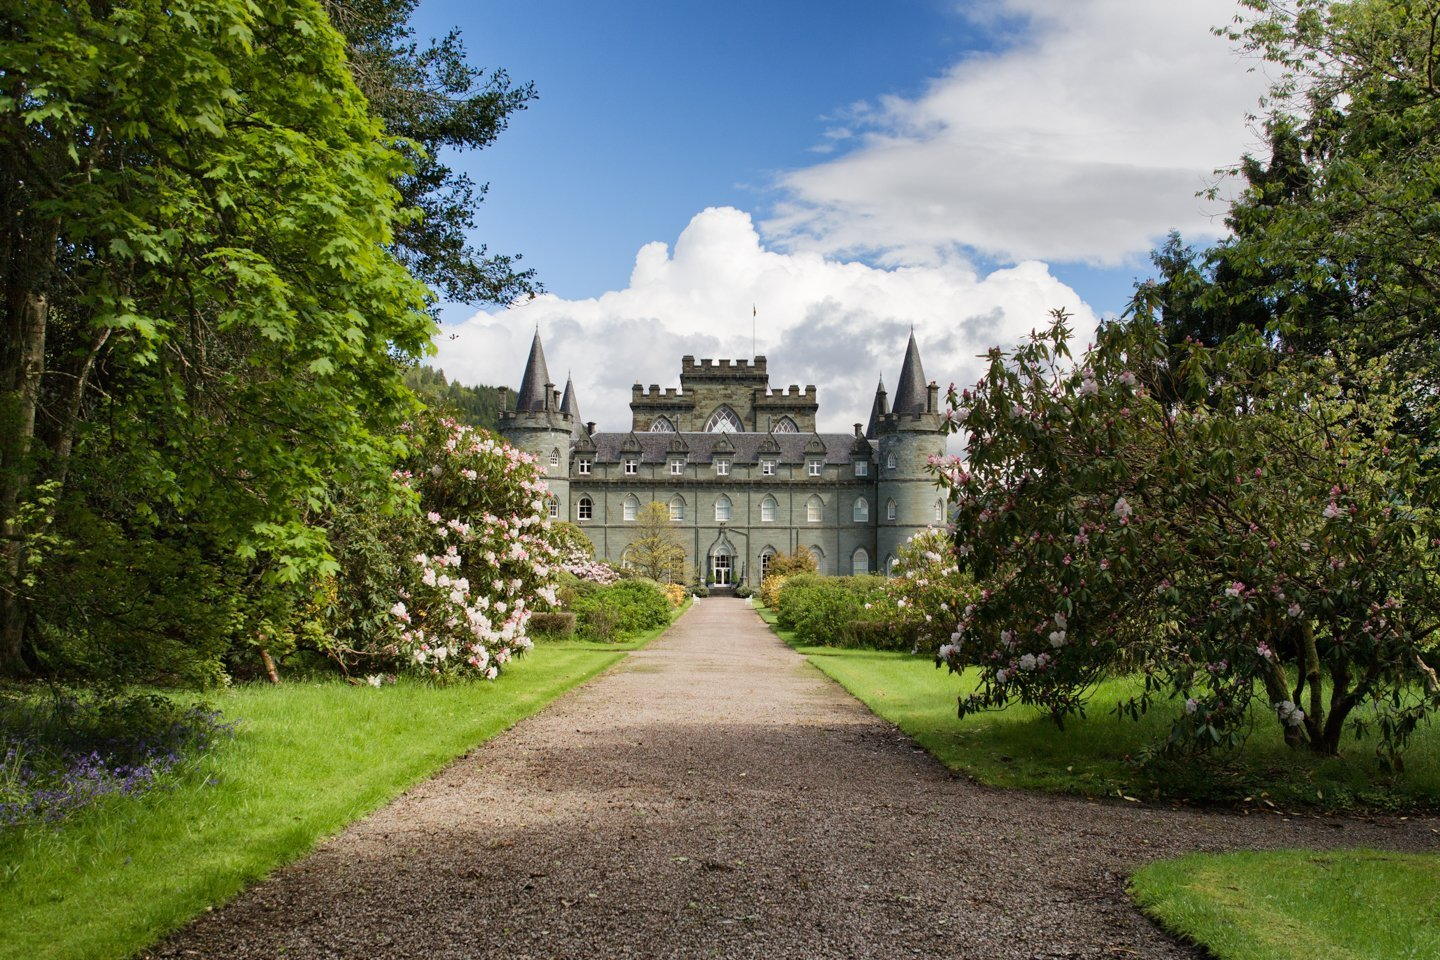 Inveraray Castle, Scotland, May 14, 2007